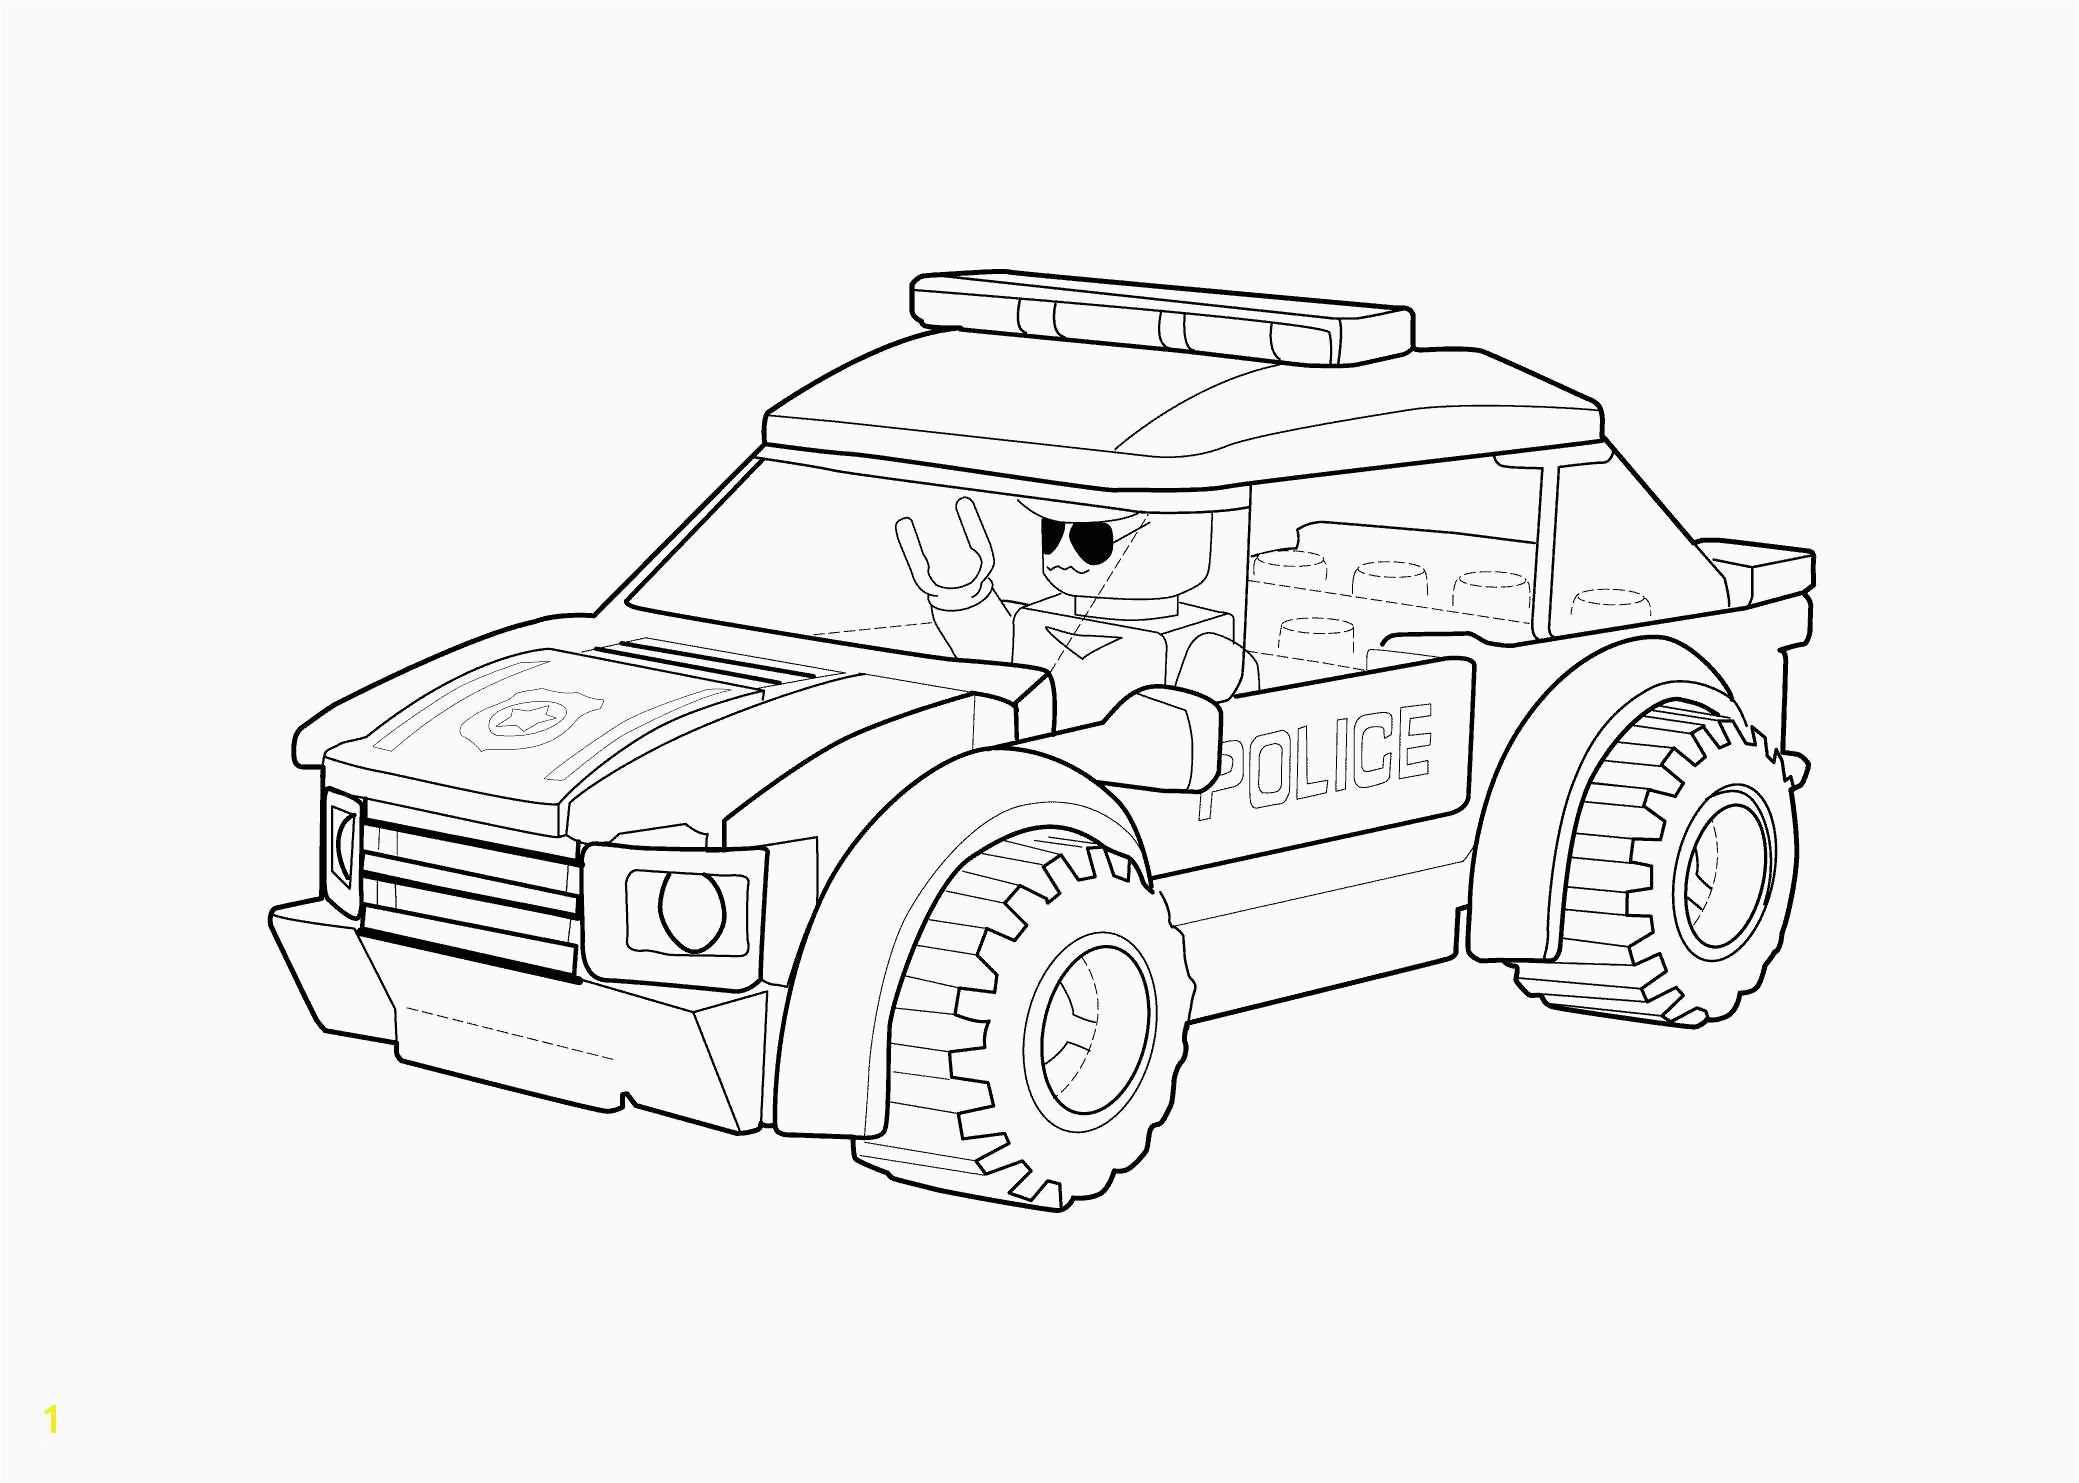 Swat Team Coloring Pages Police Car Coloring Pages Heathermarxgallery